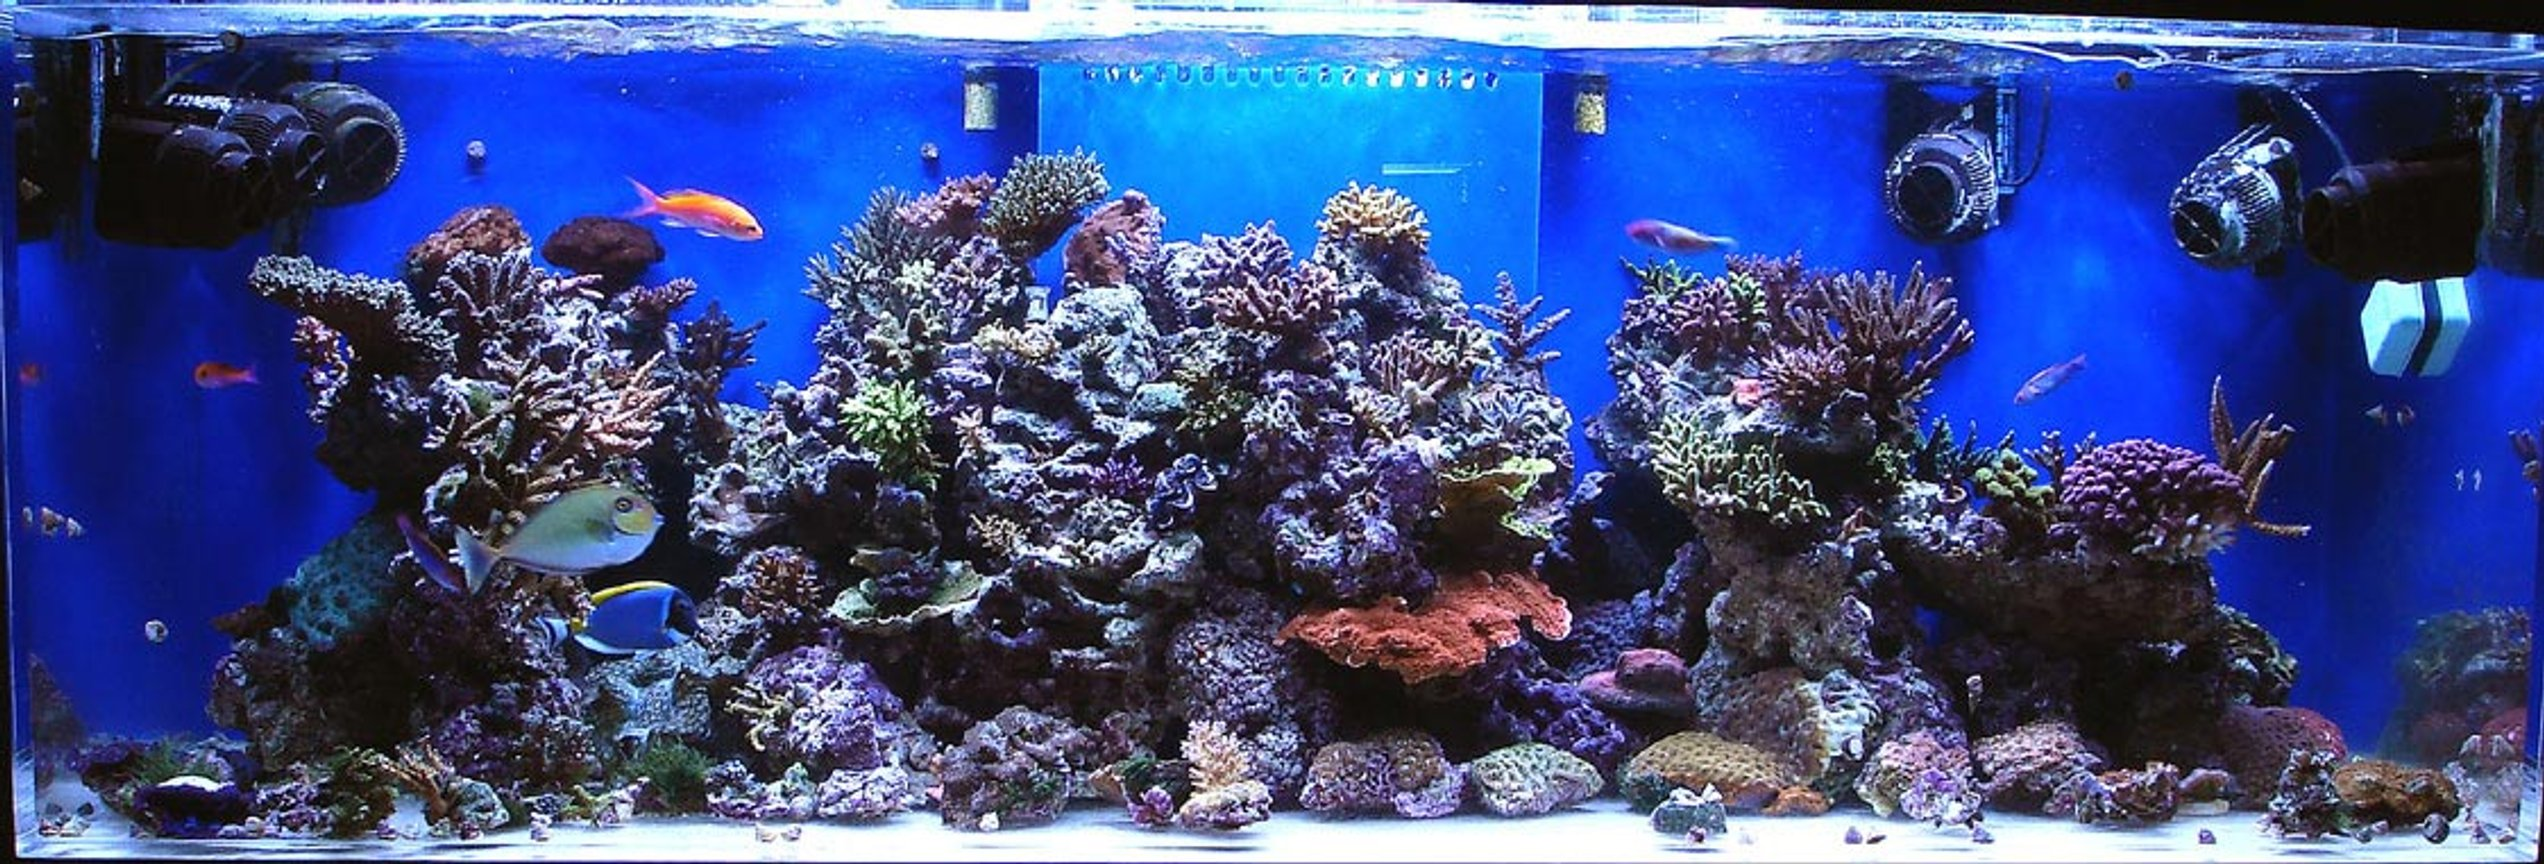 180 gallons reef tank (mostly live coral and fish) - 180g BB SPS/lps tank